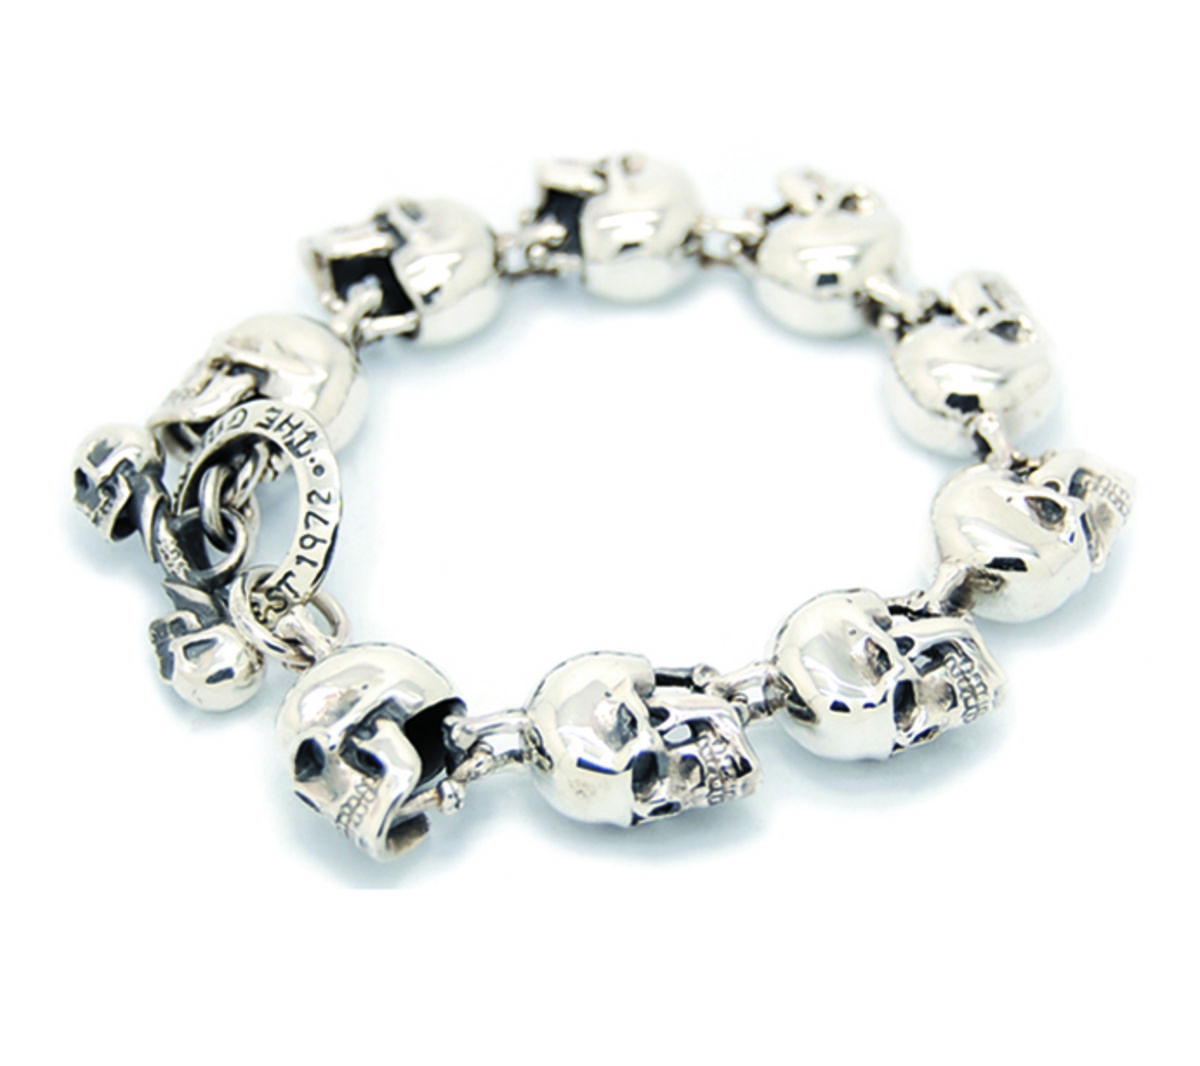 Headline for Top Rated Stainless Steel Skull Head Bracelets 2015